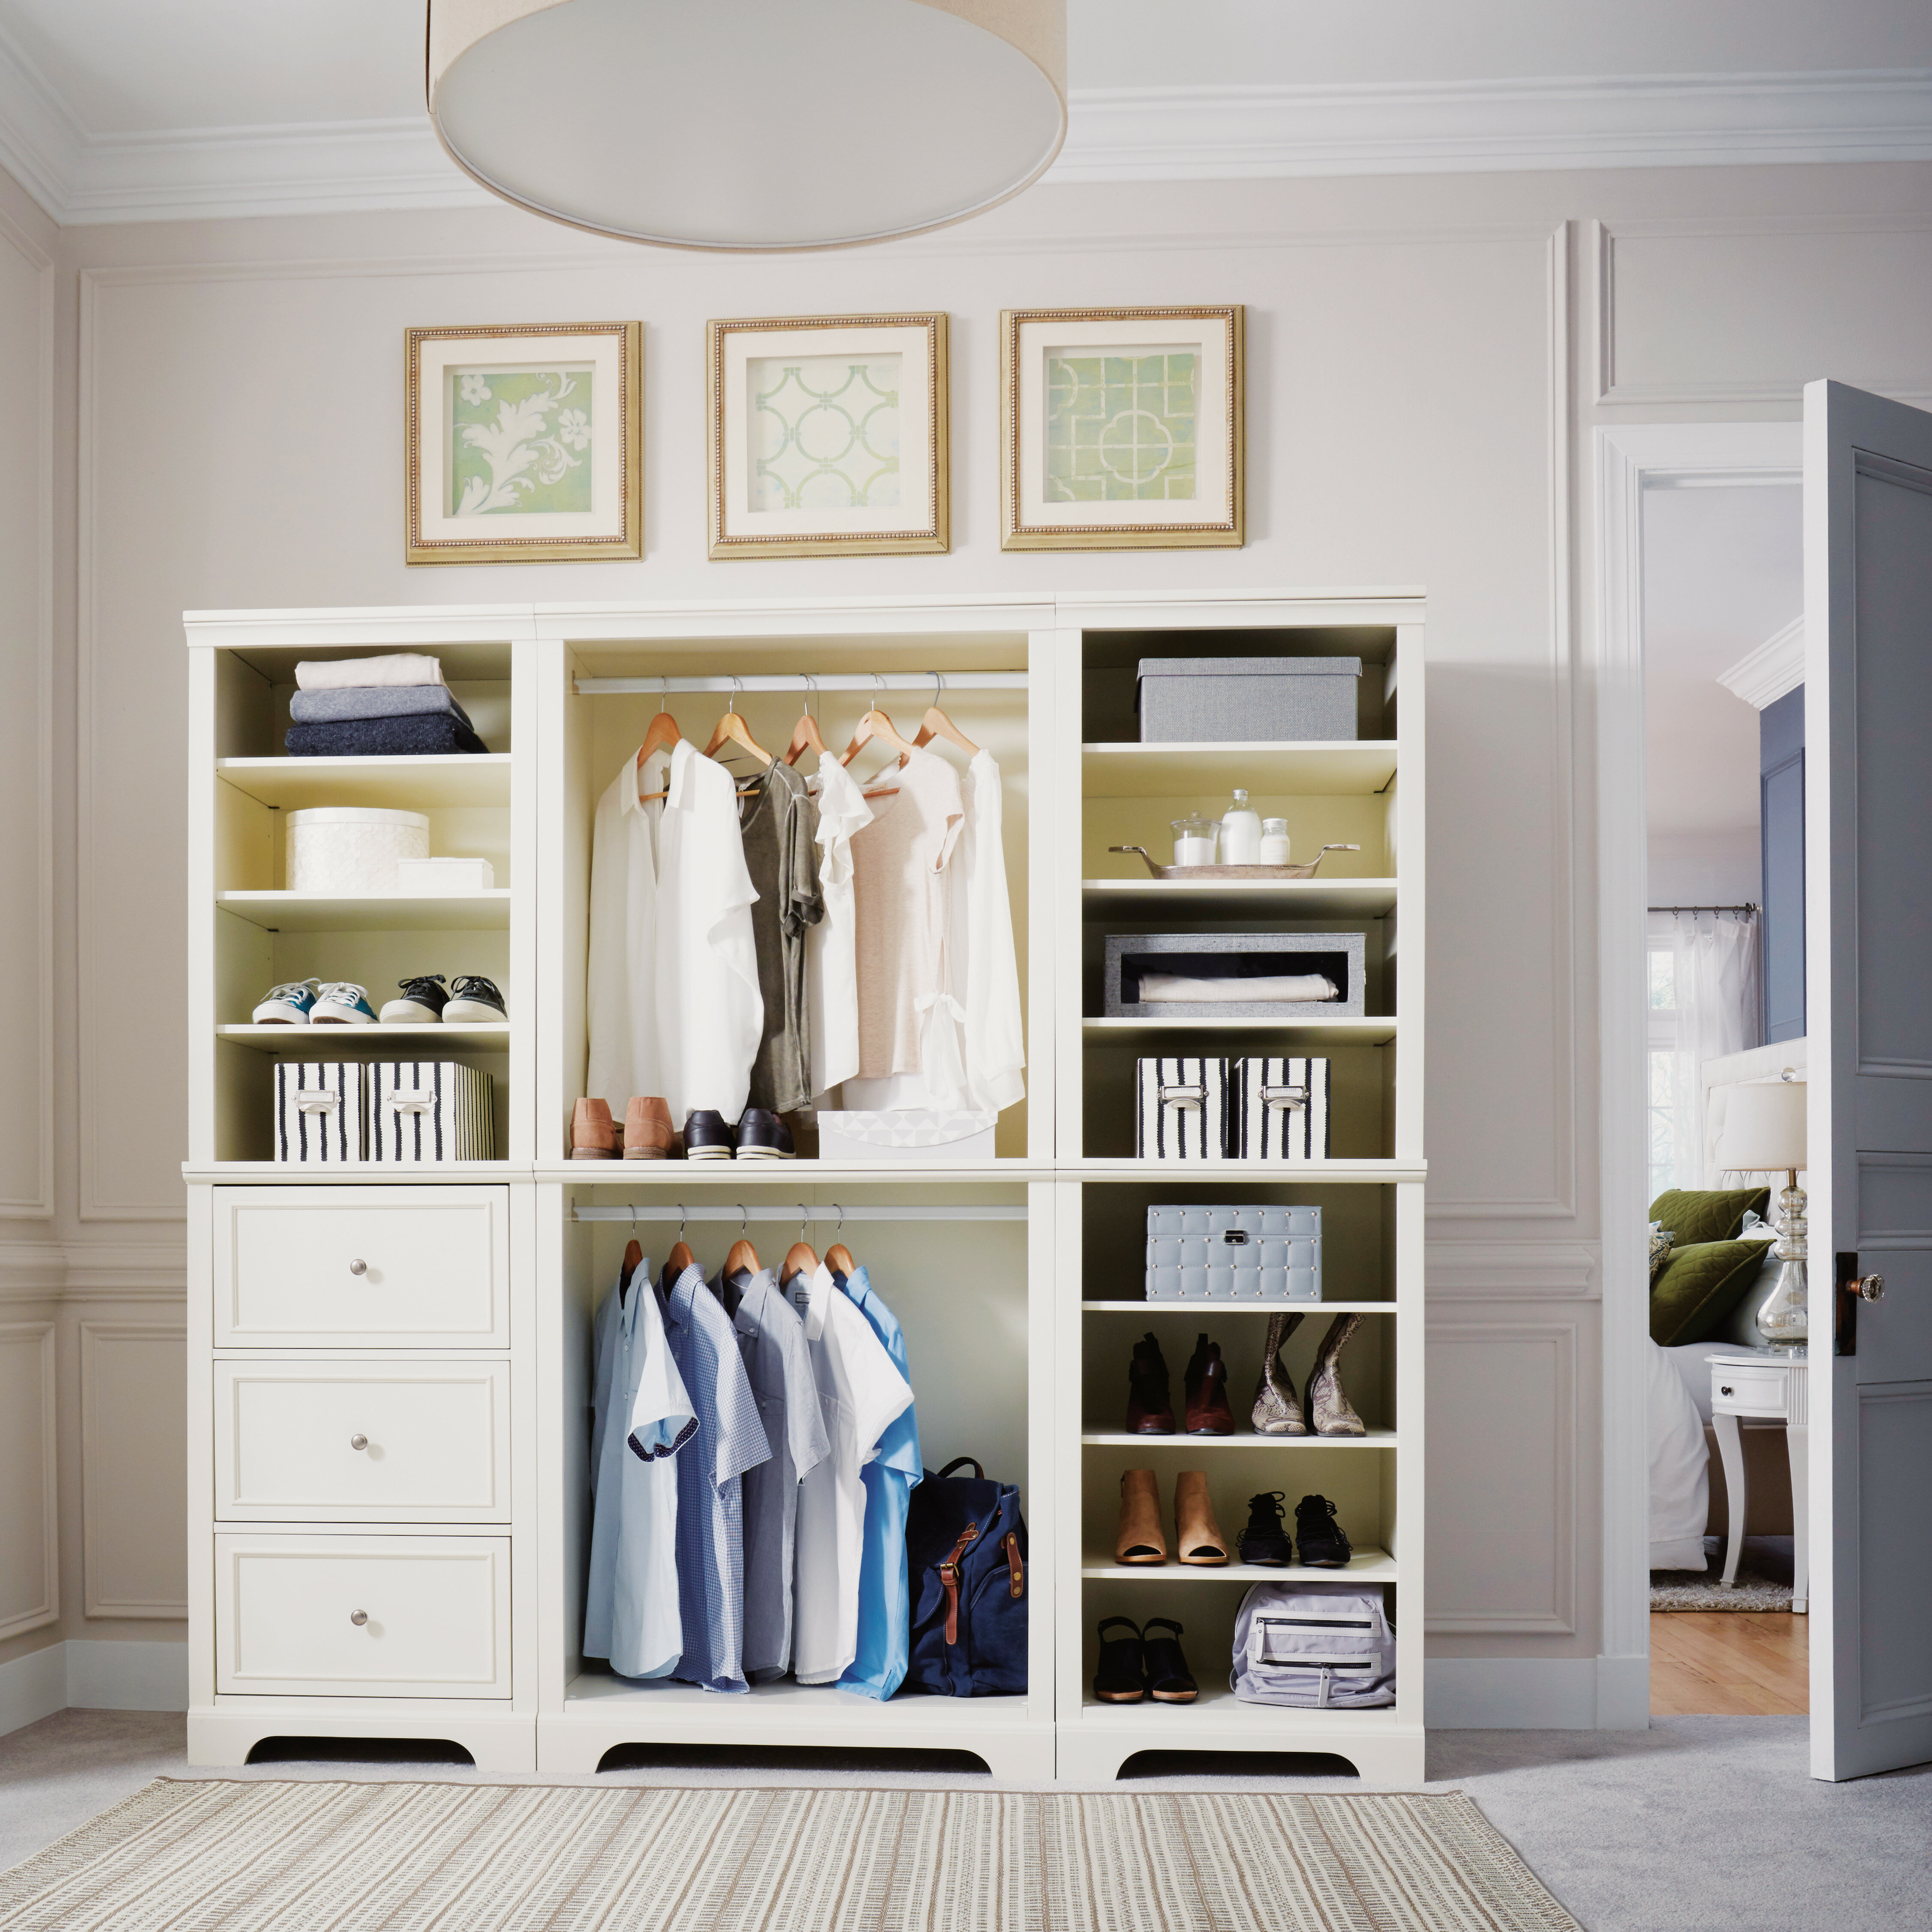 for ideas barn the drawers in walk are organizing full of solutions organizer closet systems storage build a design useful cheap laundry wood hanging size rubbermaid